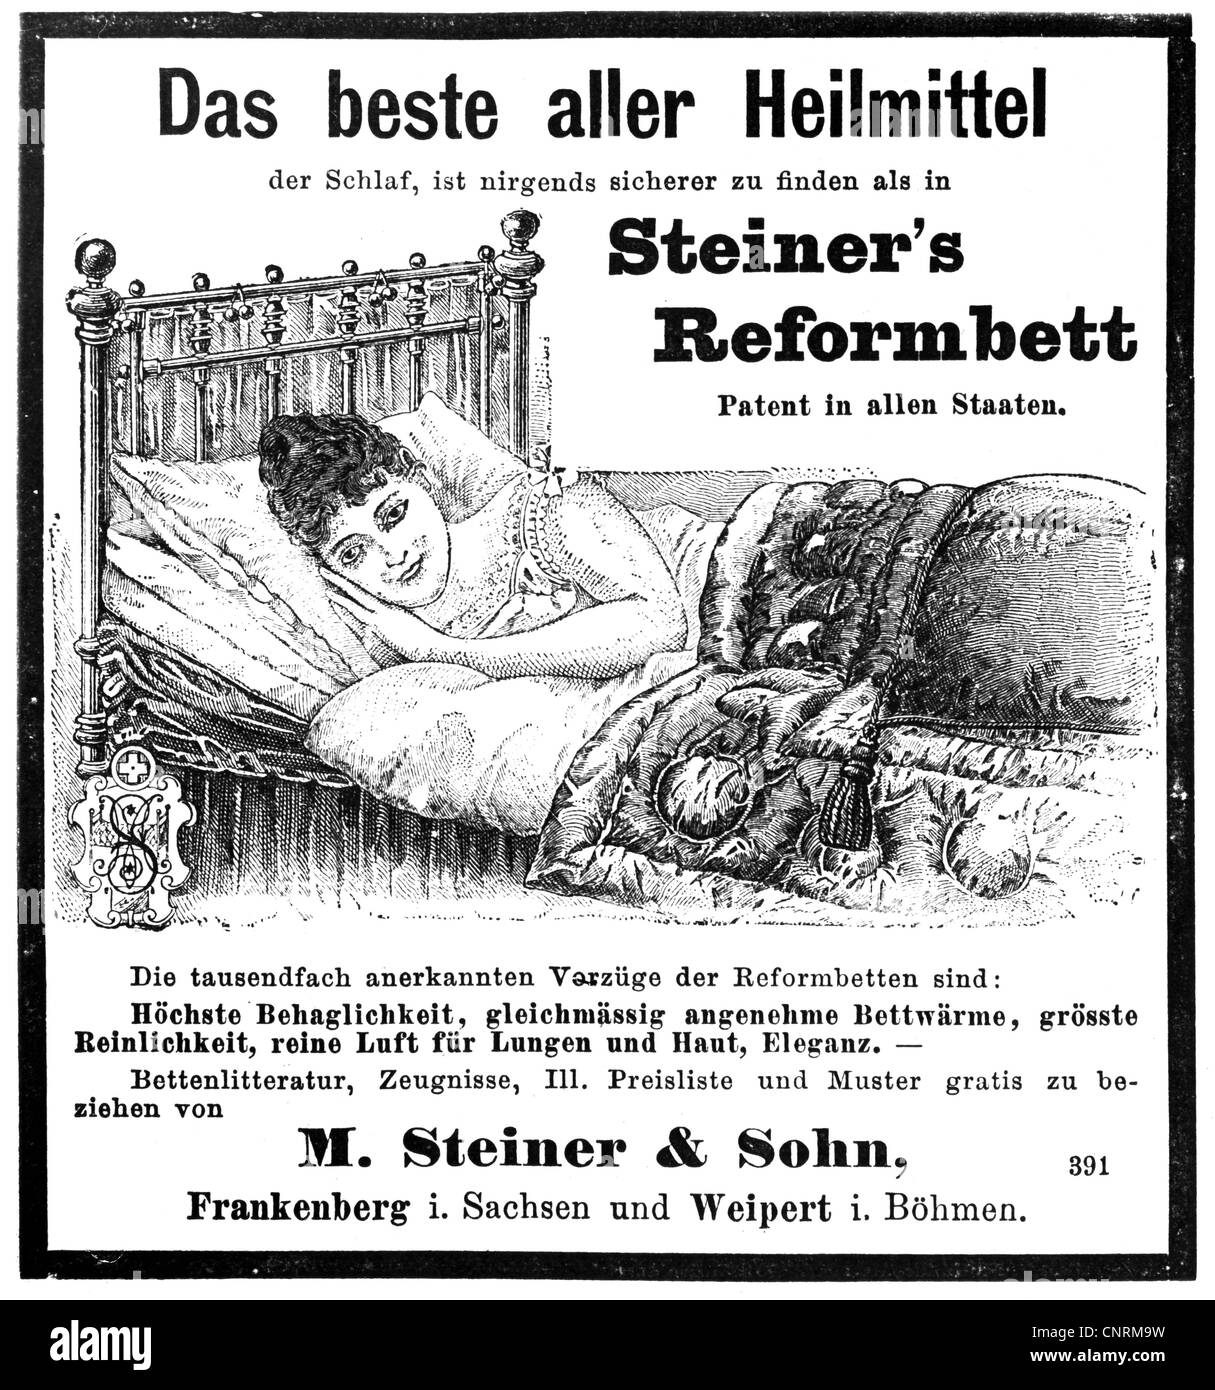 advertising, advertisements, beds, 'The best remedy', 'Steiner's reform-bed', M. Steiner & - Stock Image